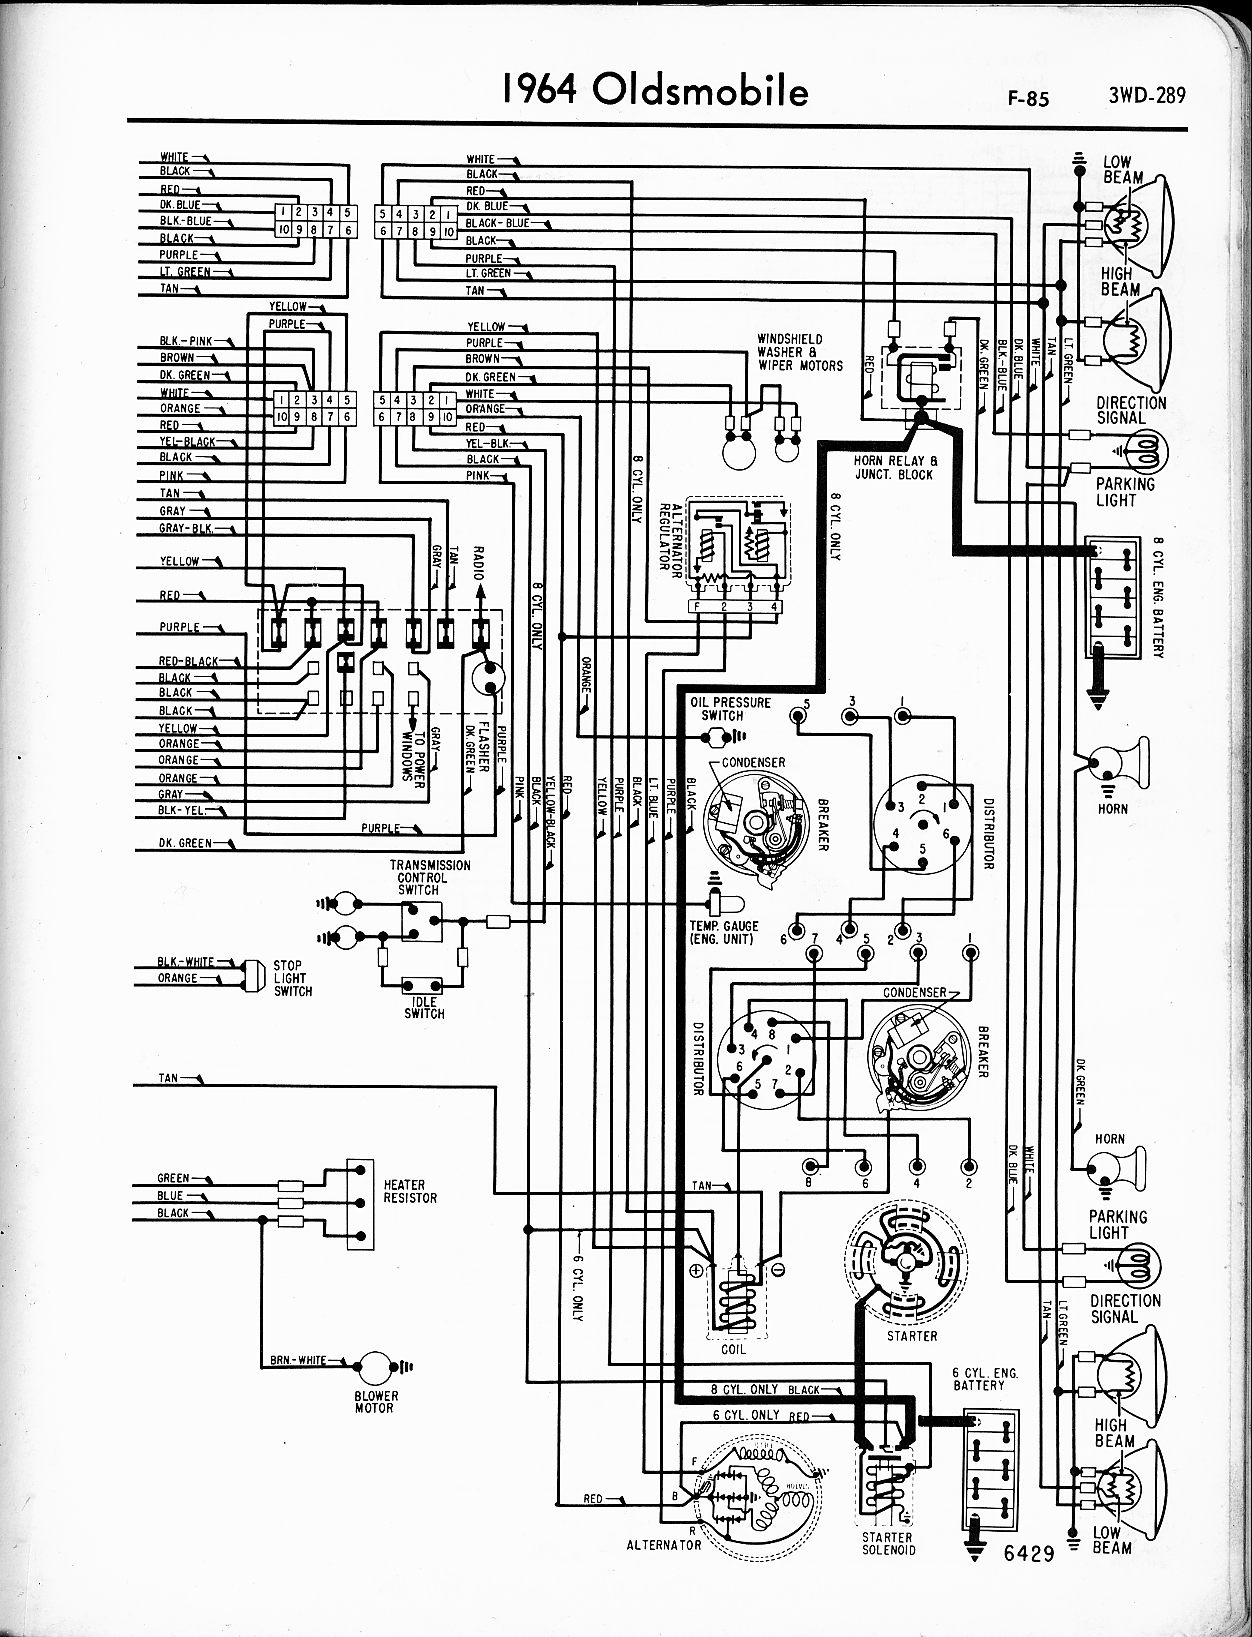 oldsmobile wiring diagrams the old car manual project rh oldcarmanualproject com 1949 Oldsmobile Wiring-Diagram Oldsmobile Steering Diagrams